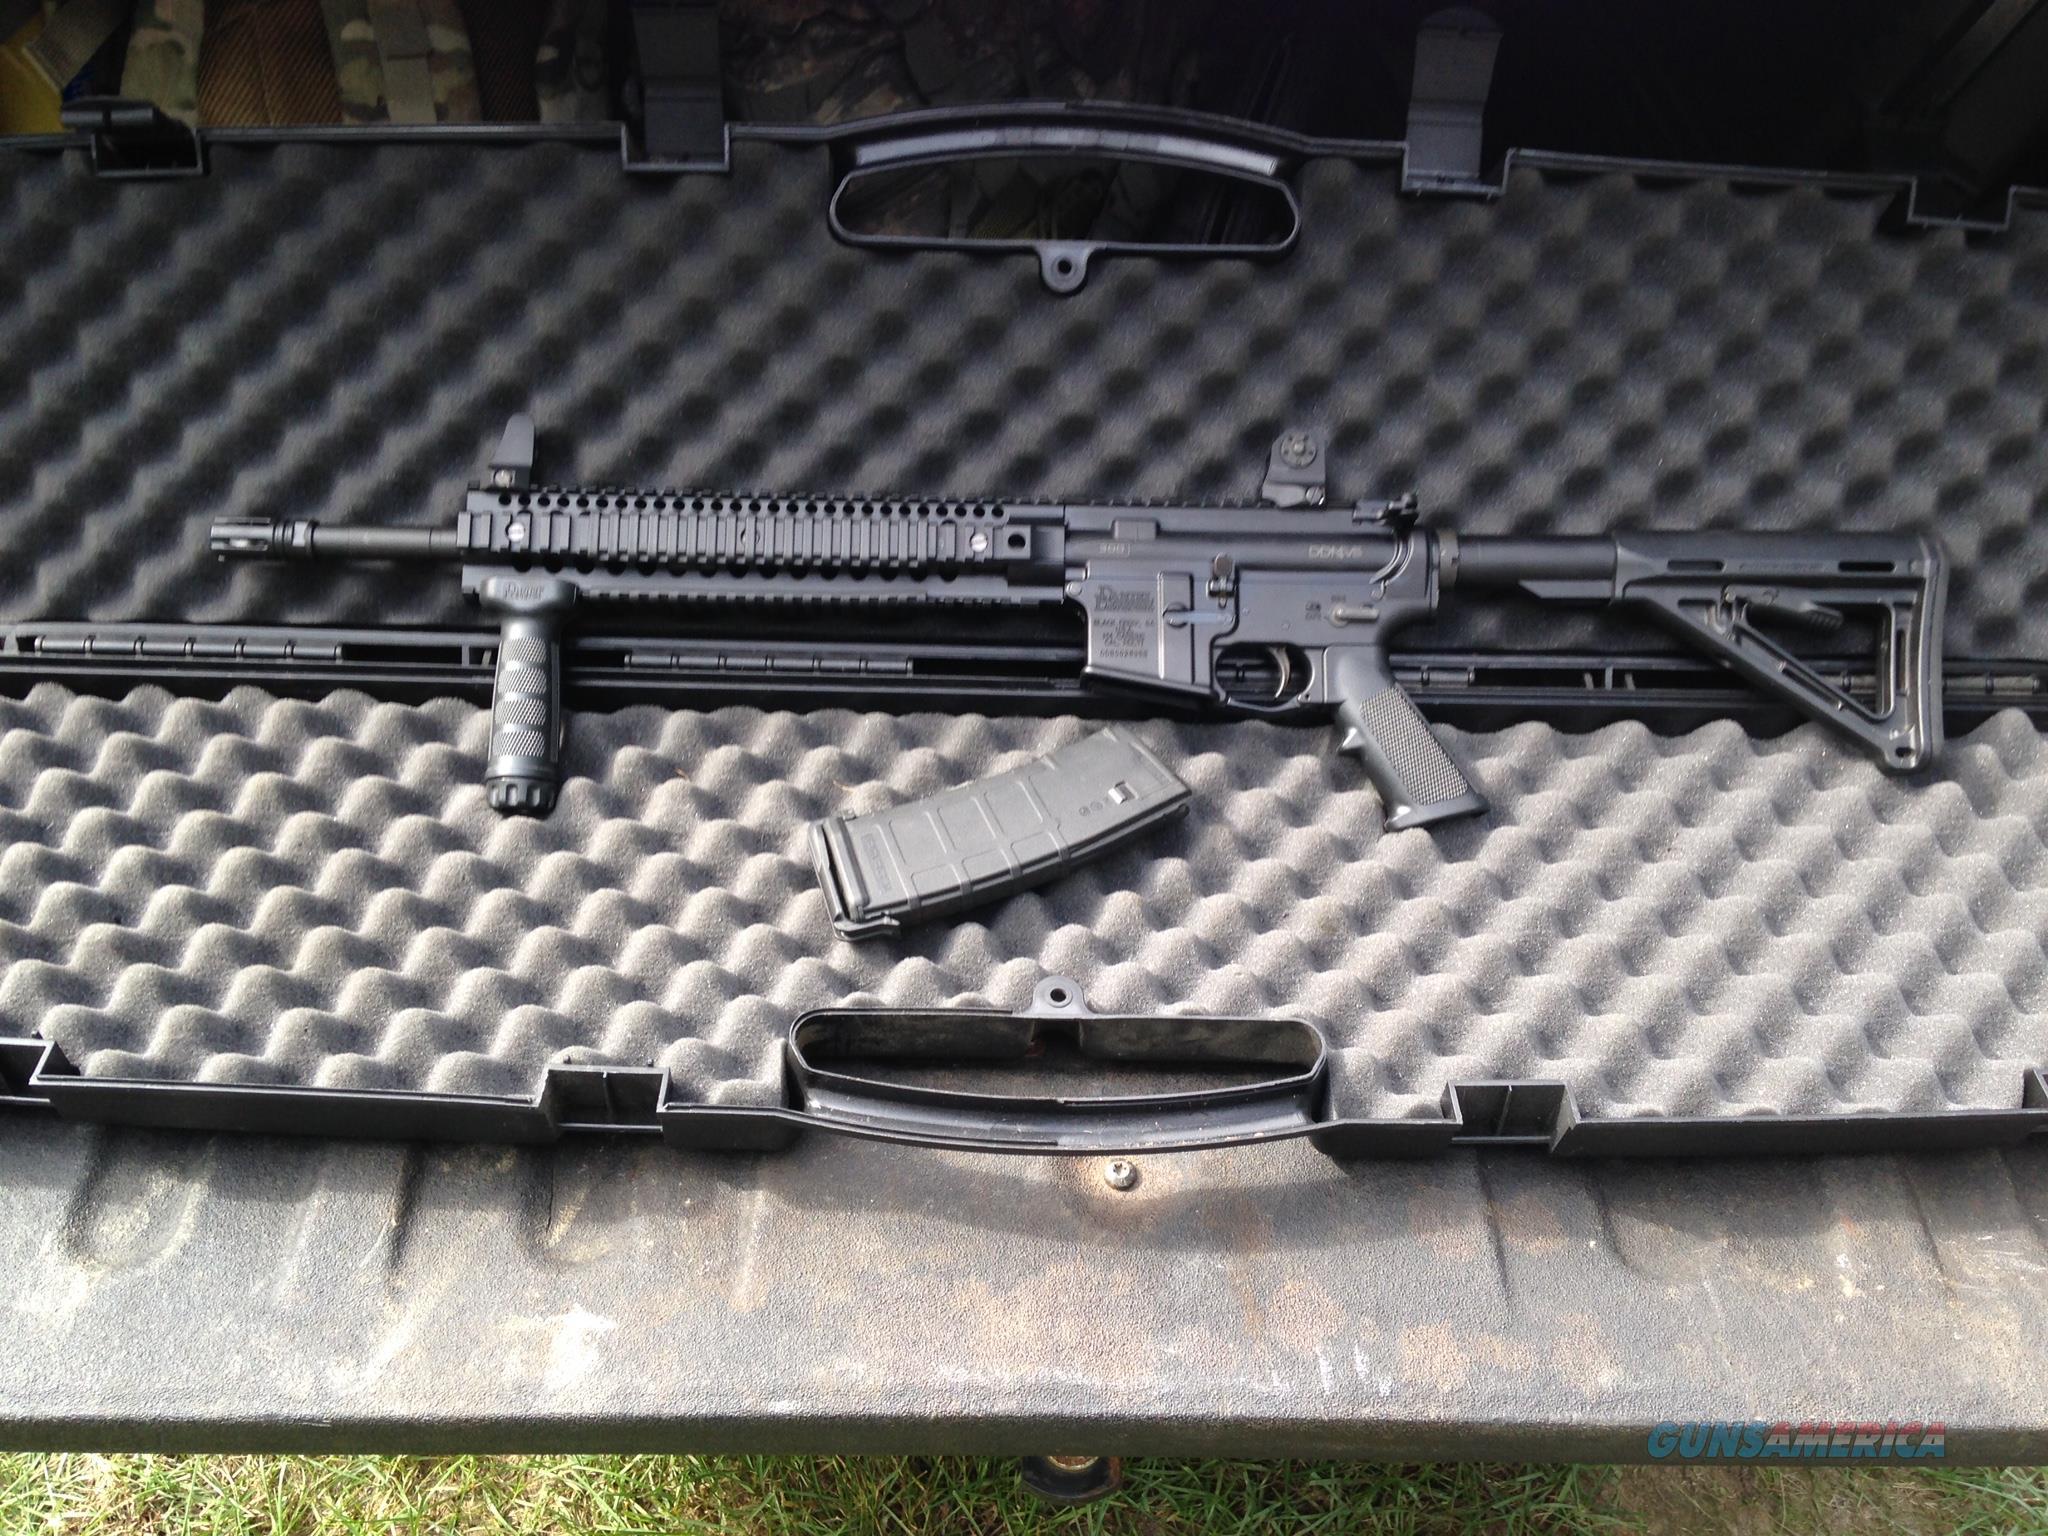 rare find, almost brand new daniel defense 300blkout  Guns > Rifles > Daniel Defense > Complete Rifles